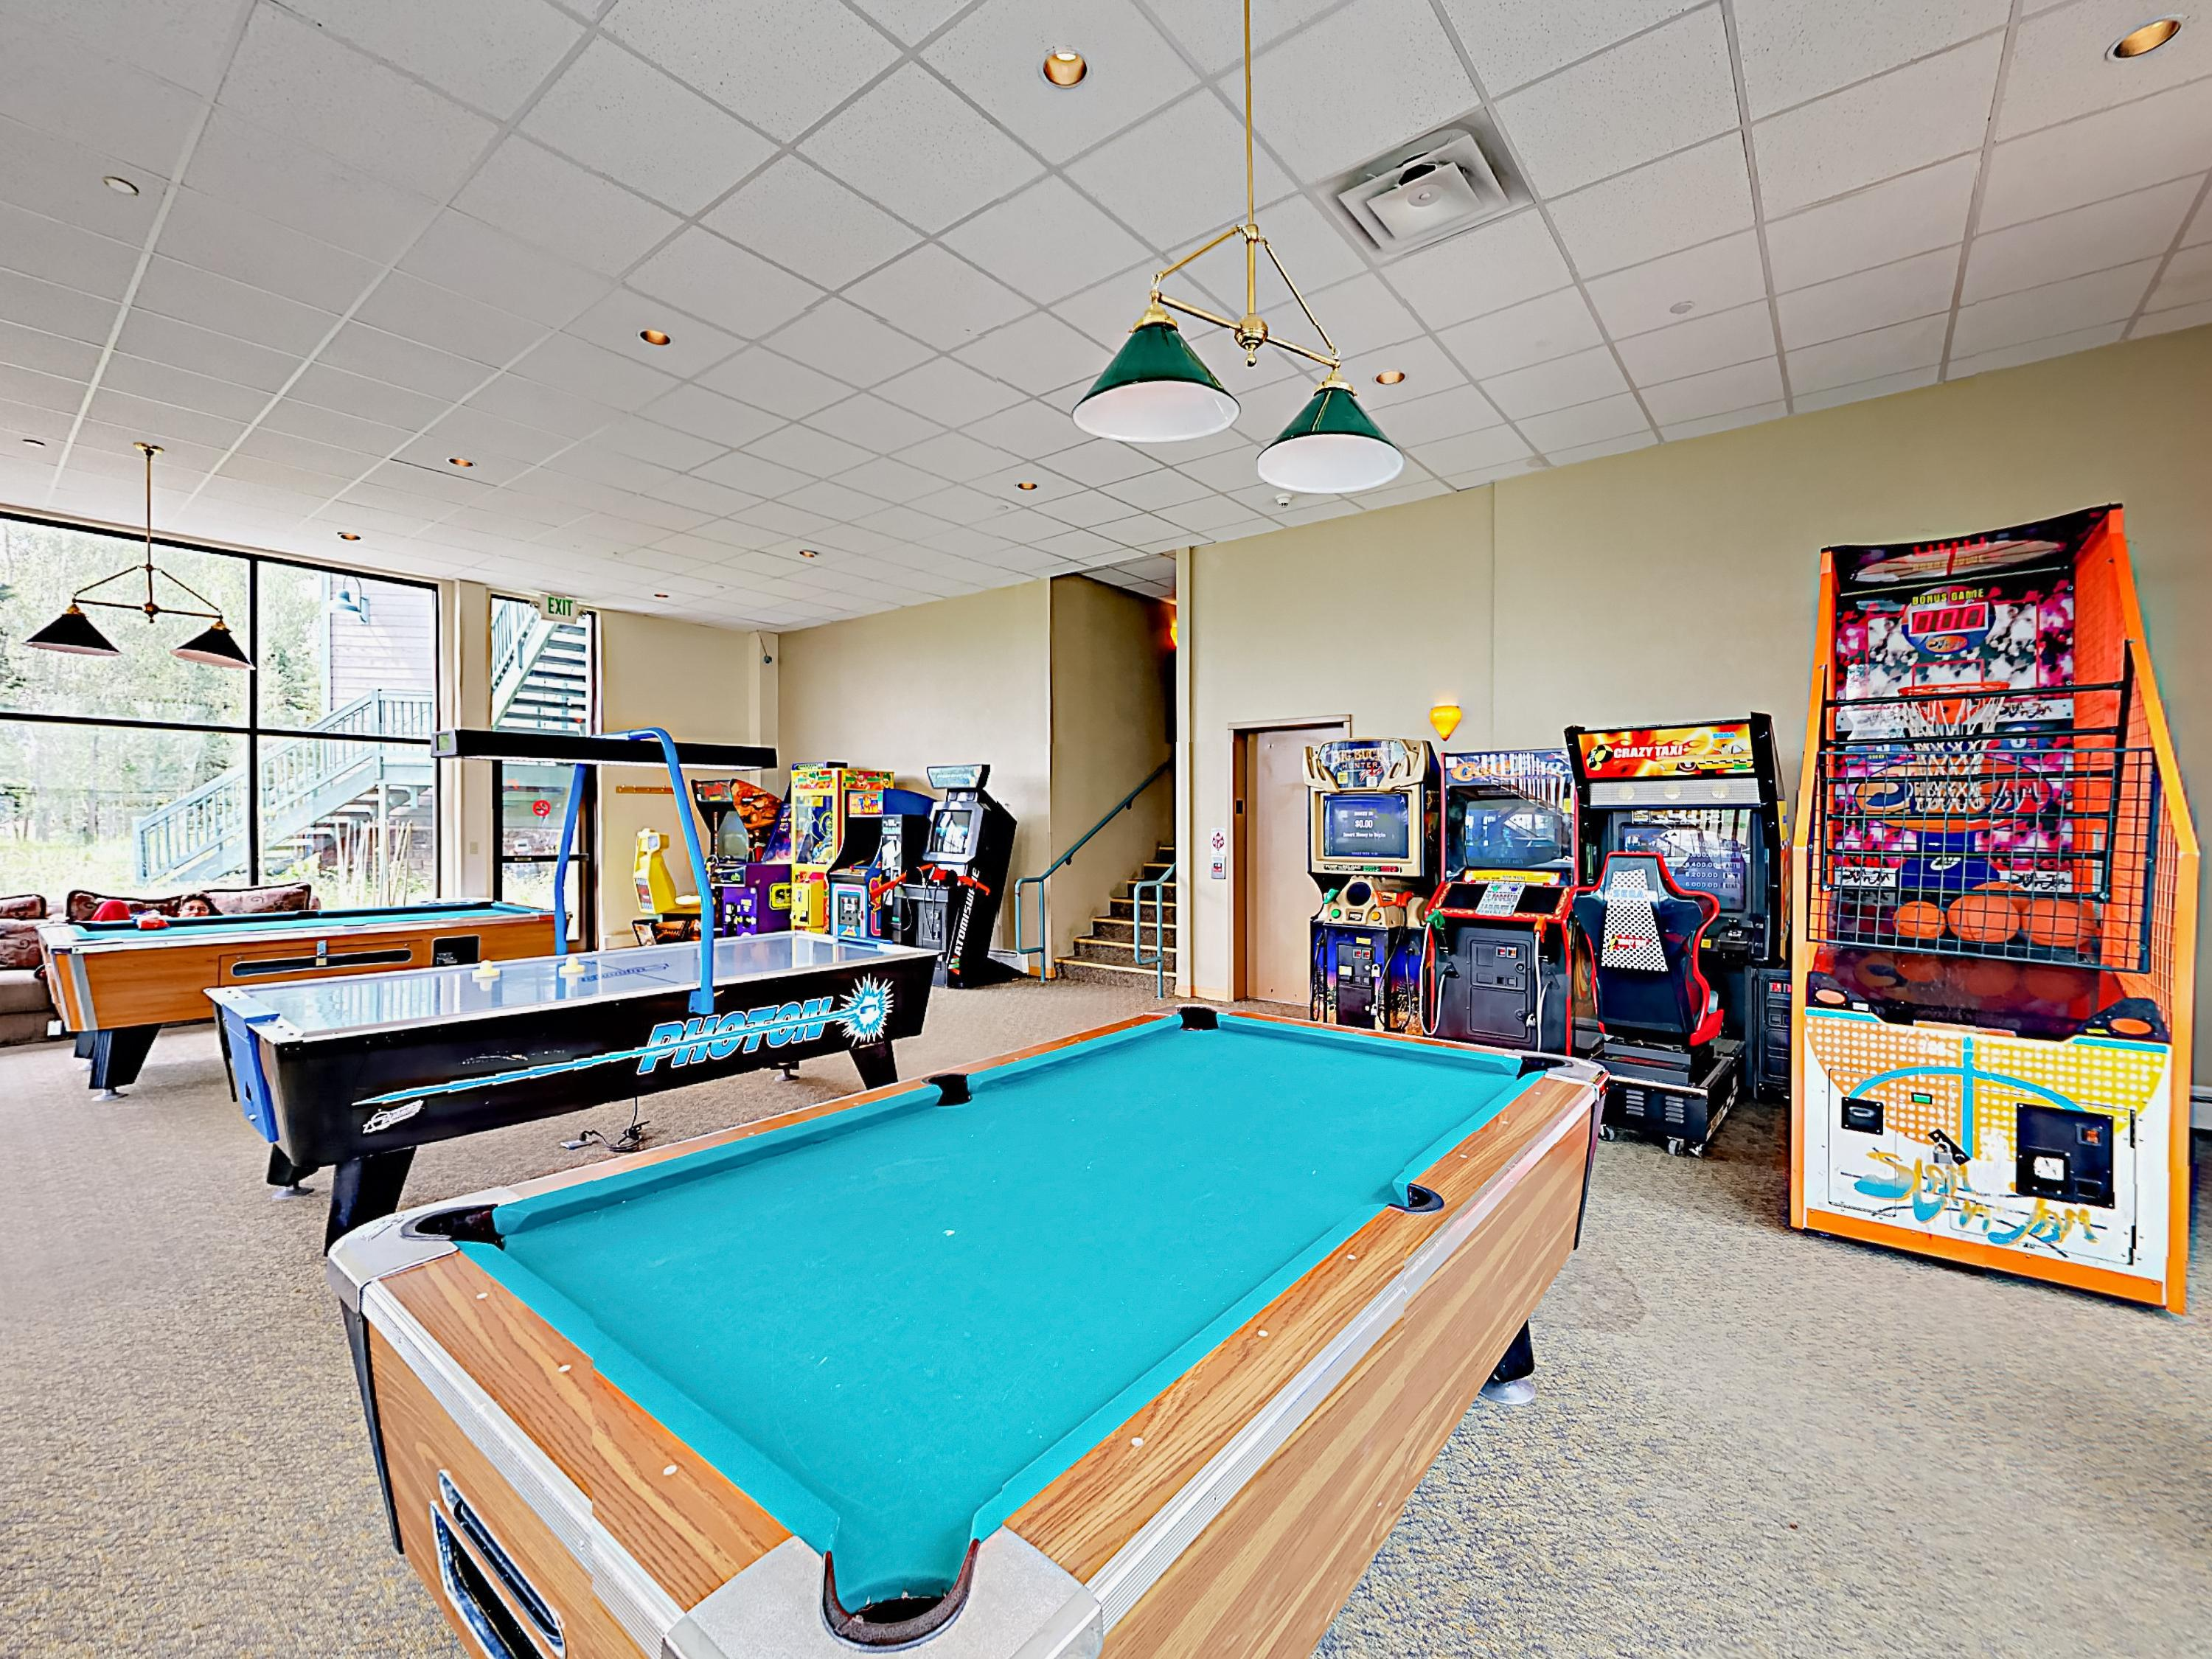 Mingle in the lounge, play a game of billiards, or hone your skills in the arcade.